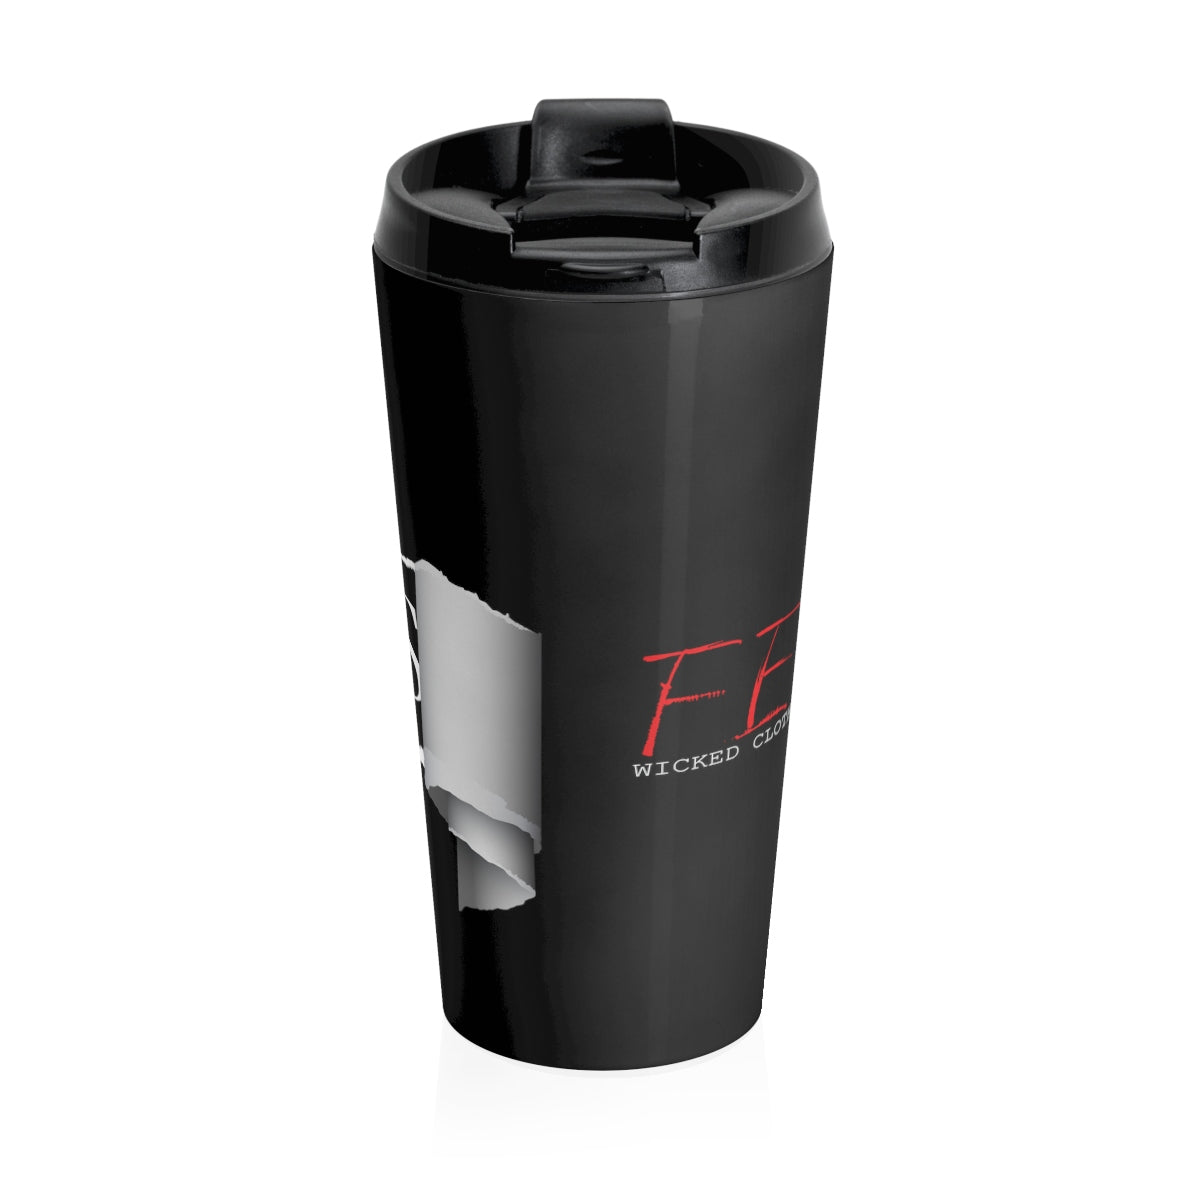 Fearless Ripped/Stainless Steel Travel Mug